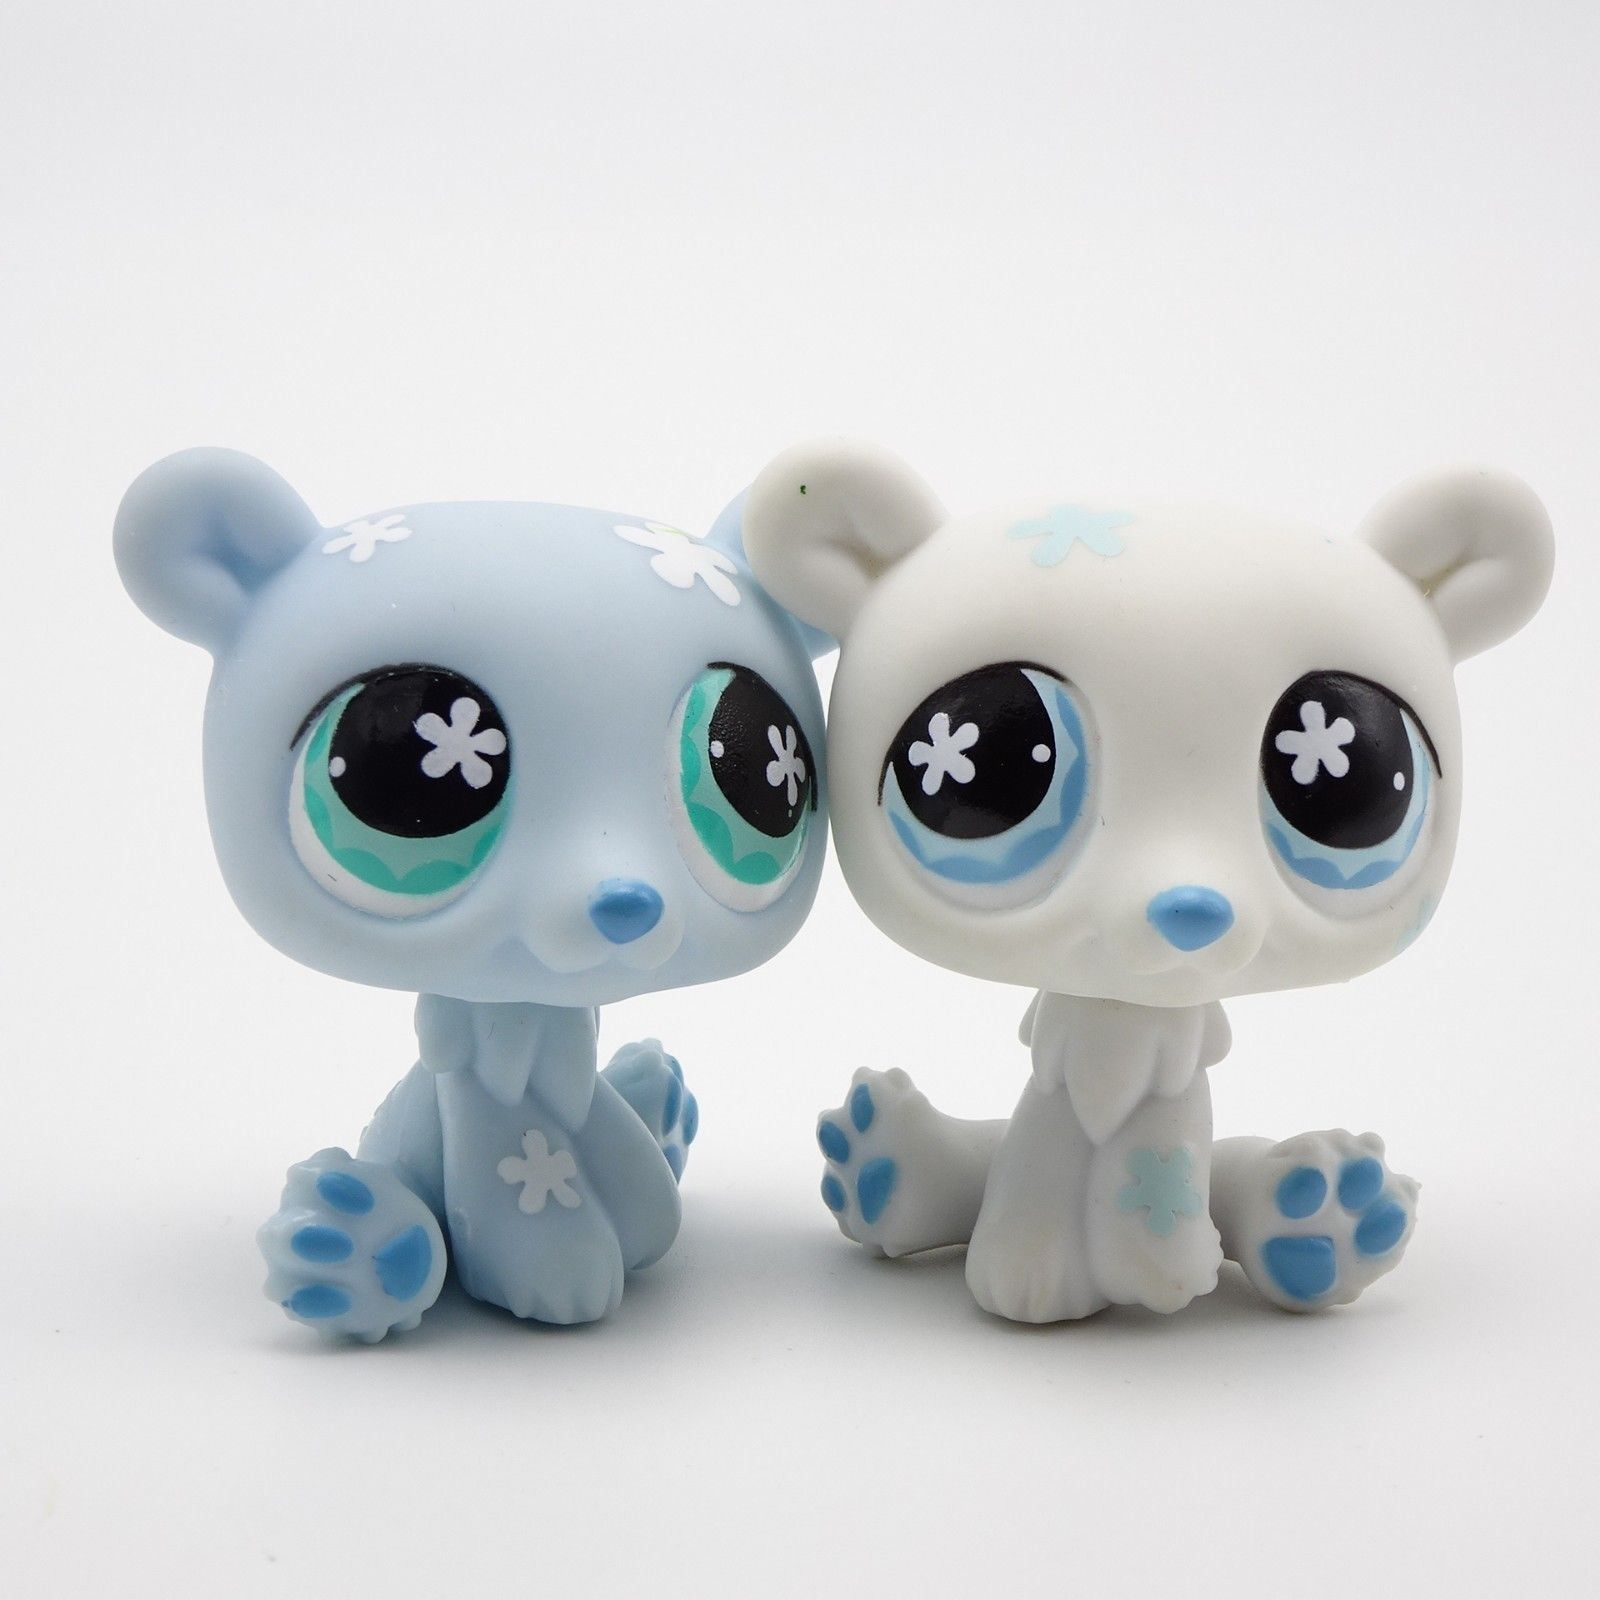 Littlest Pet Shop Polar Bear Pair 646 Blue 647 White Flower